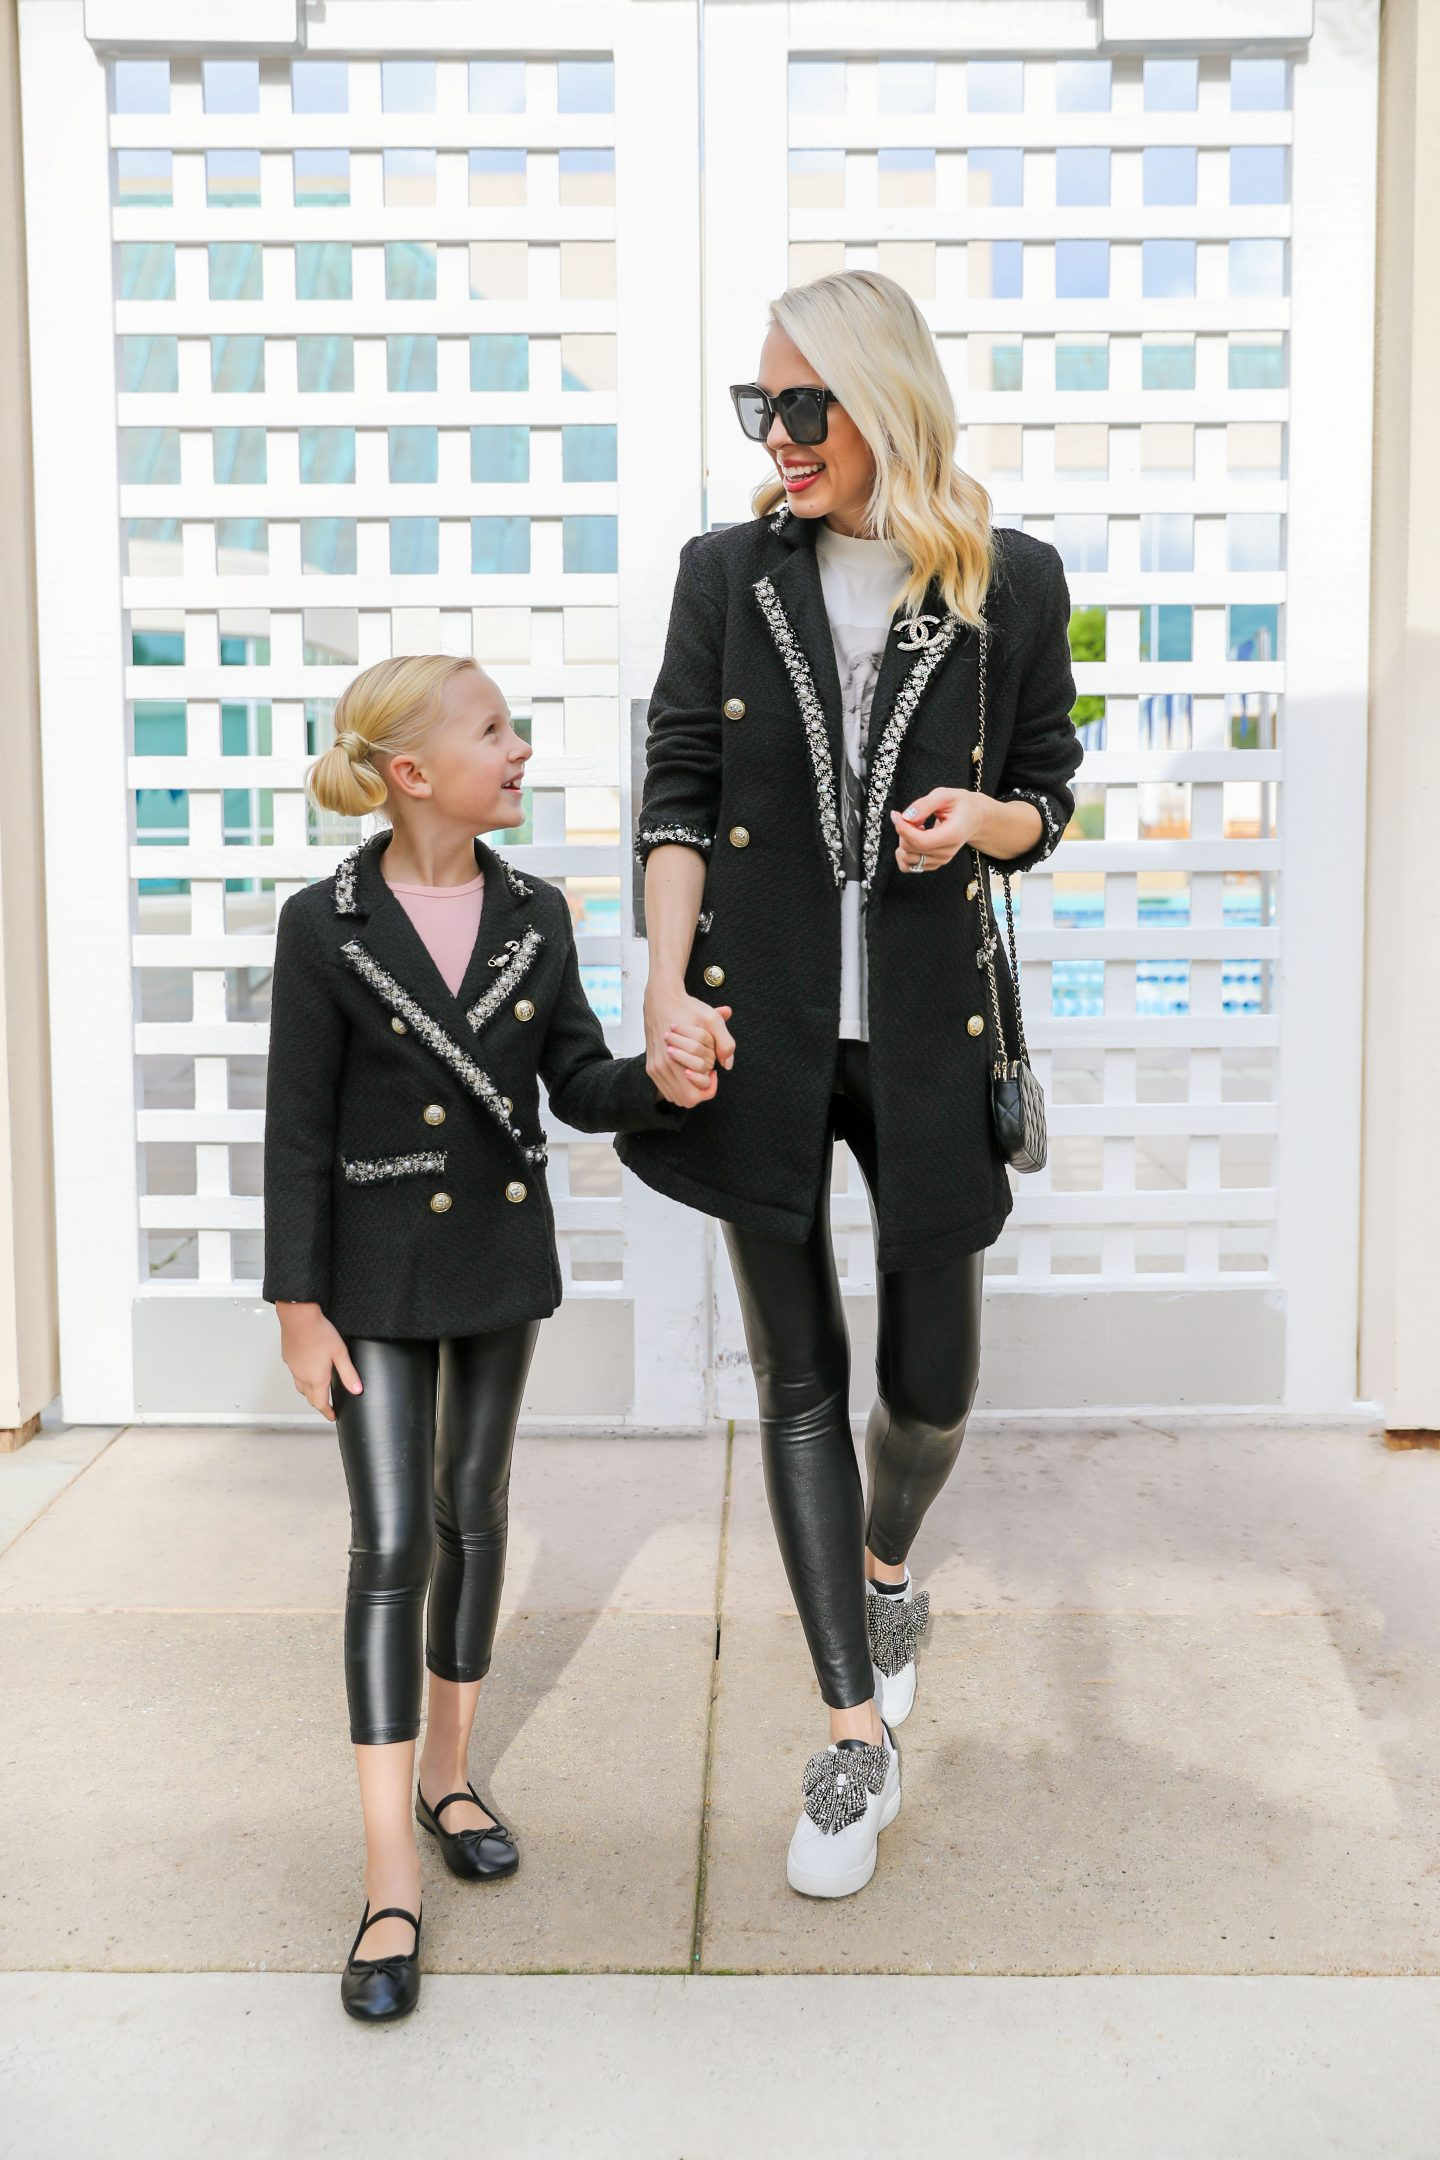 Shein tweed blazer affordable mommy and me style featured by top San Francisco fashion blogger Lombard and Fifth.